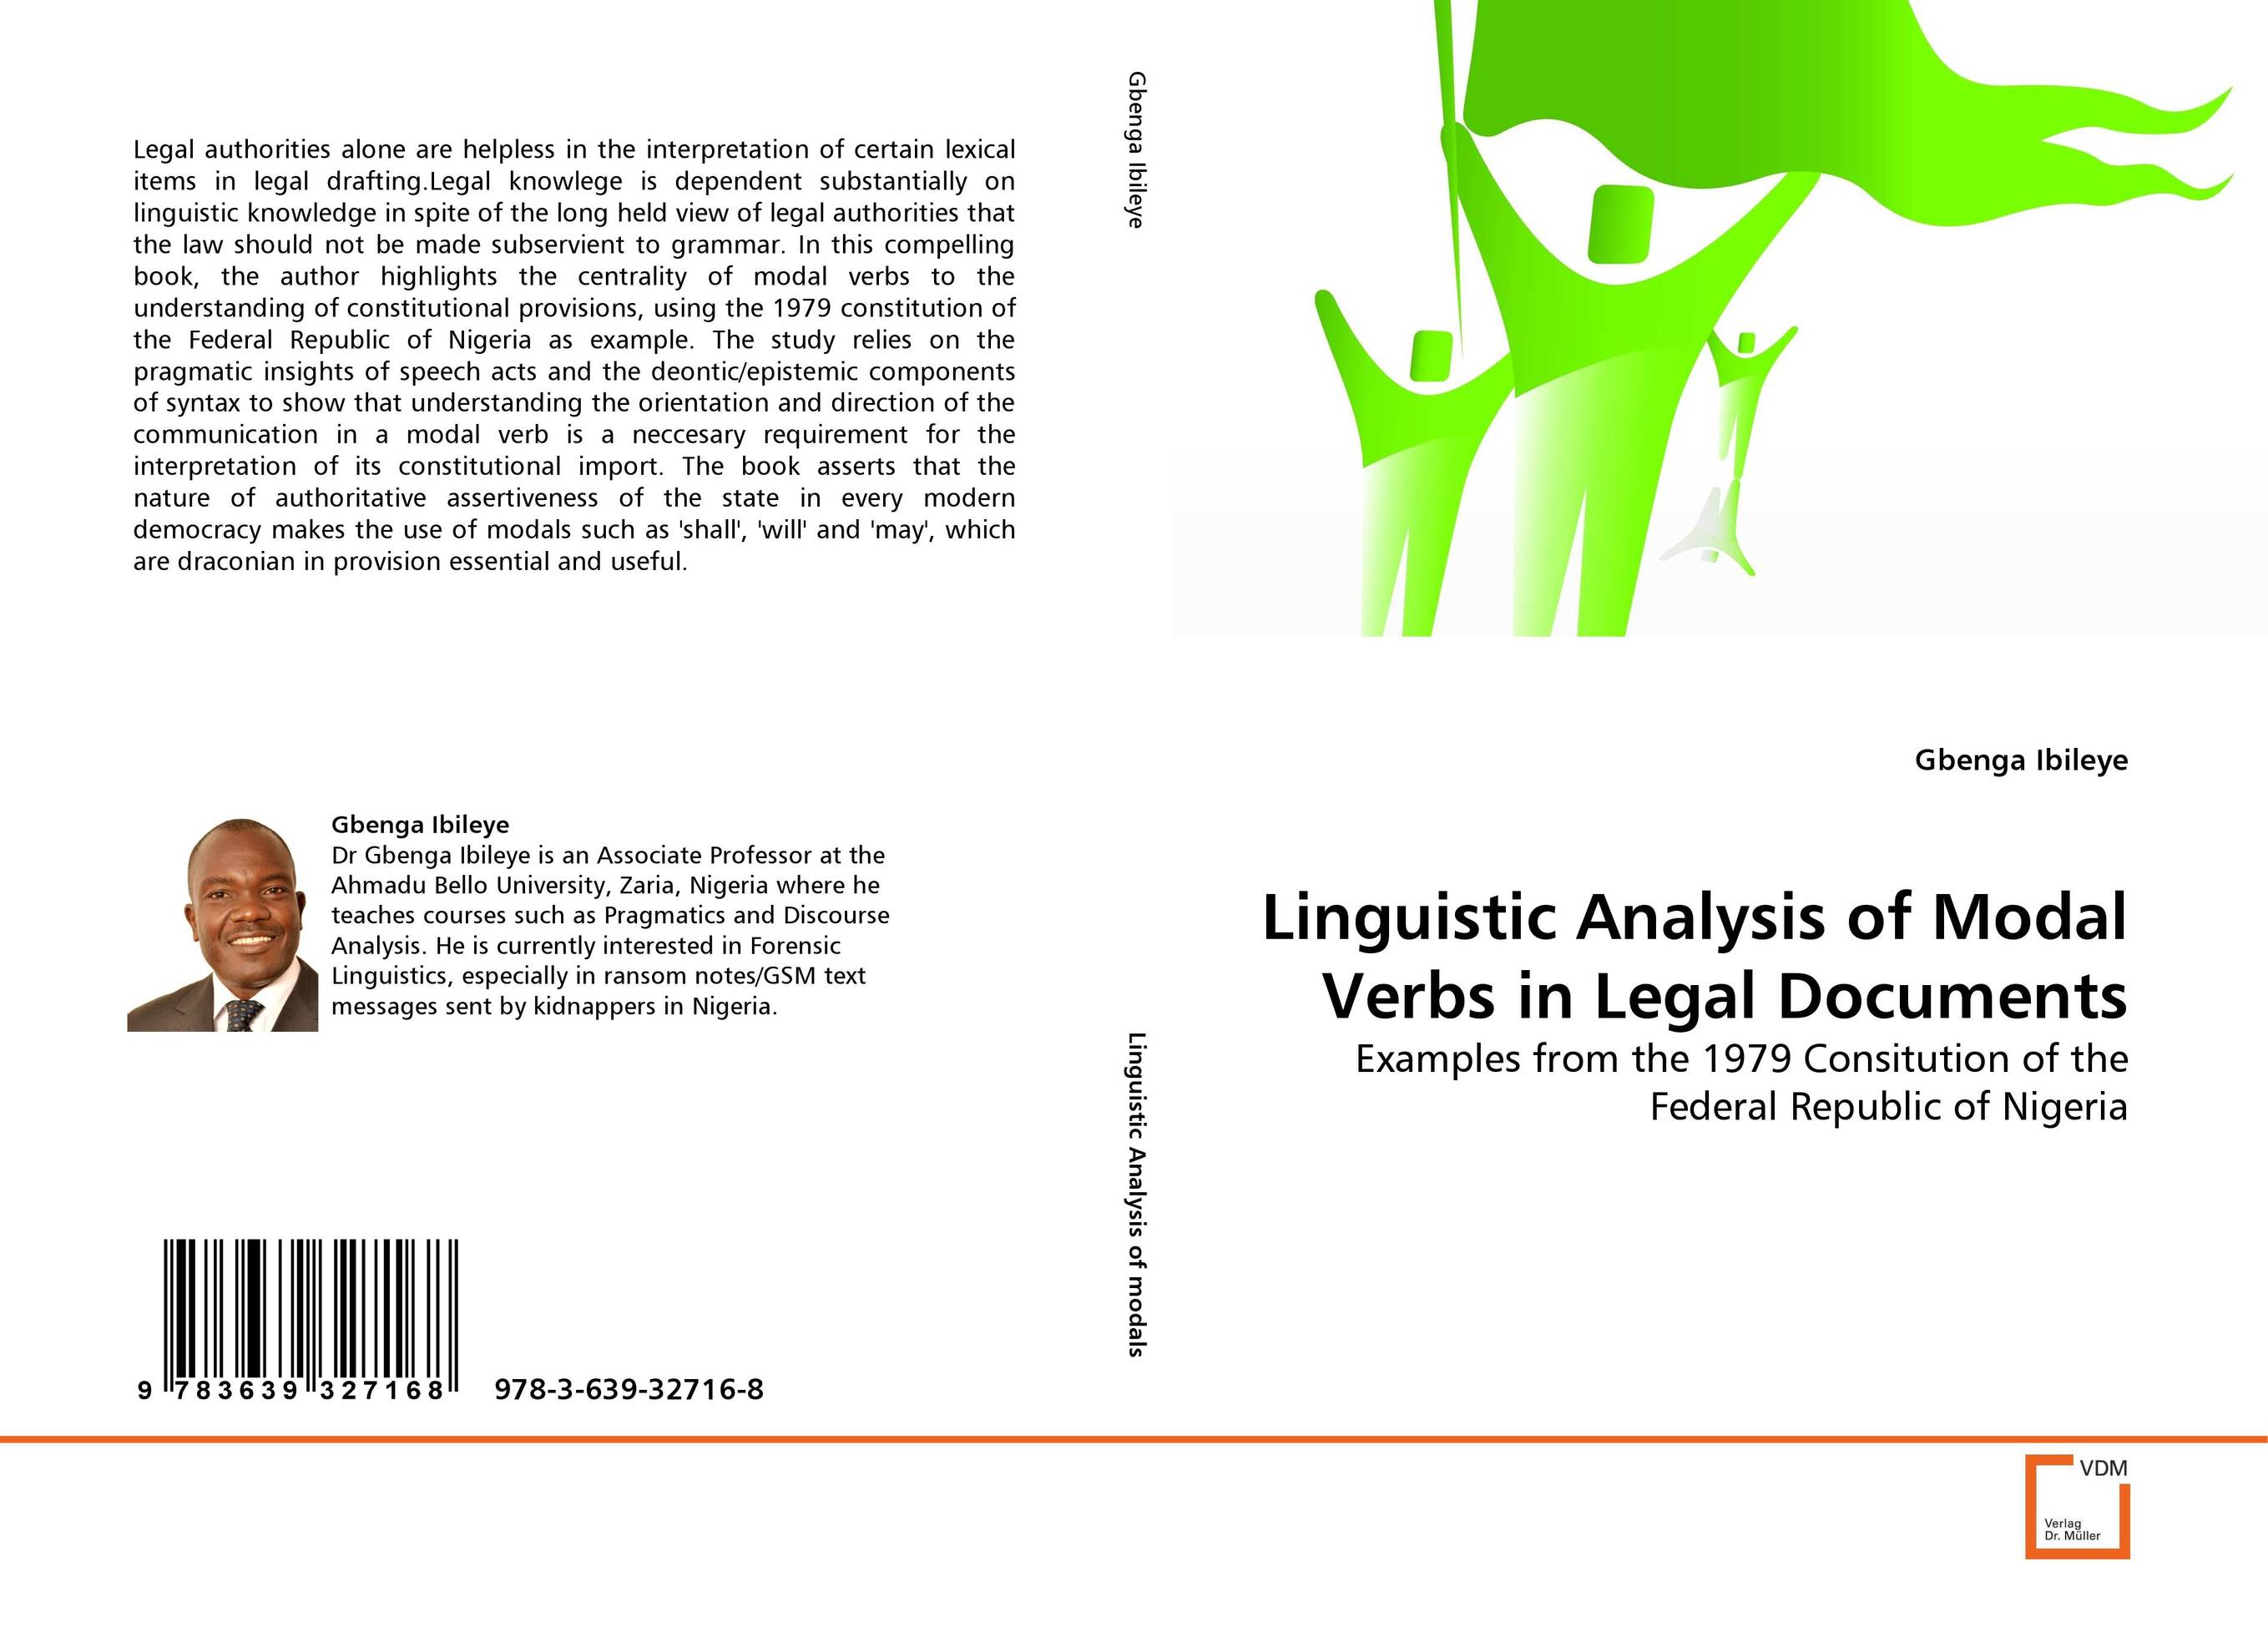 Linguistic Analysis of Modal Verbs in Legal Documents the internal load analysis in soccer